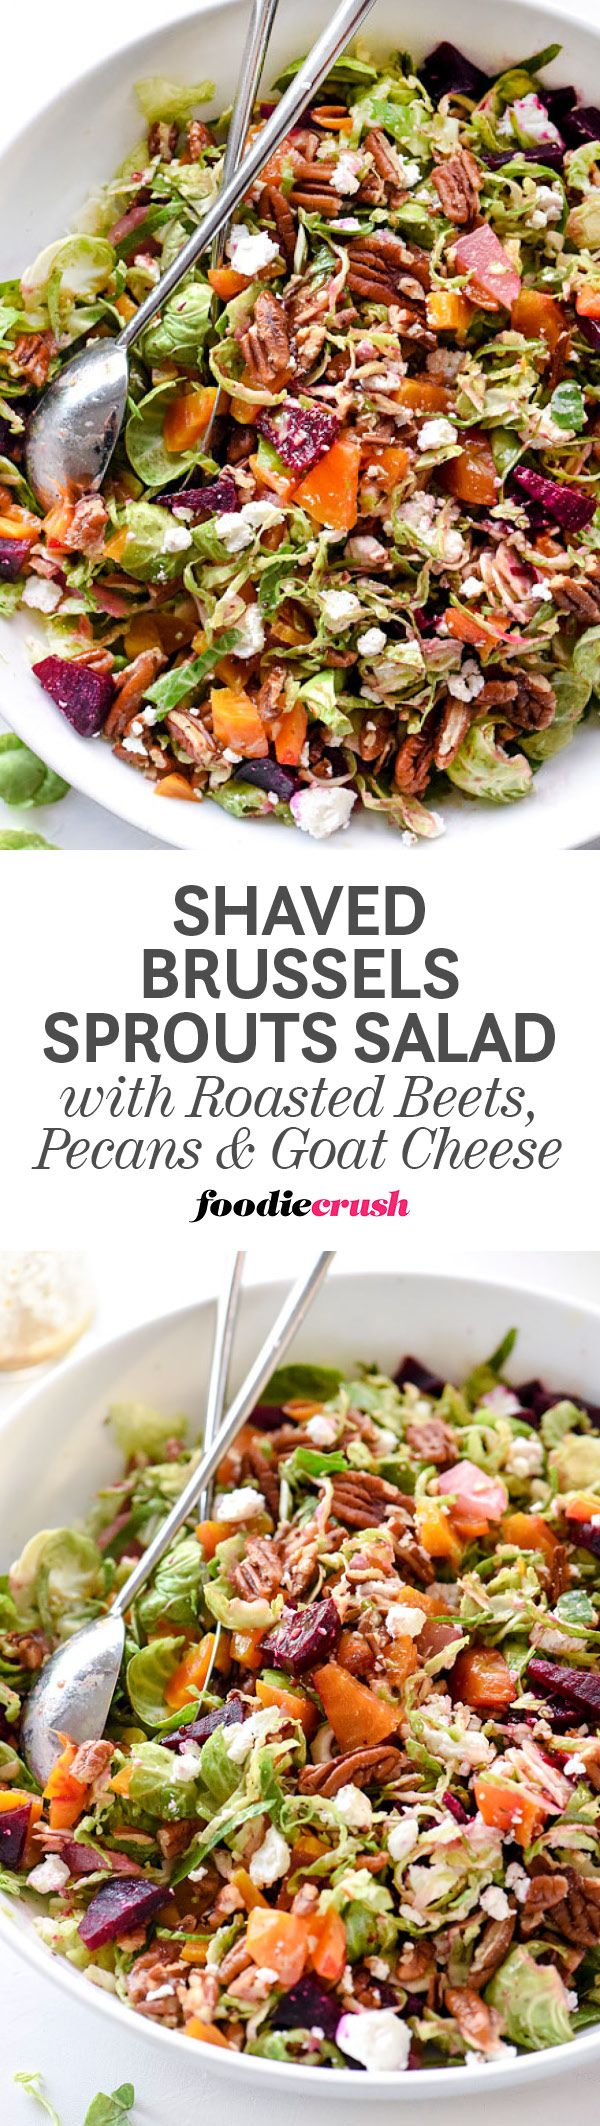 This hearty Brussels sprouts salad sweetened with roasted beets and ...